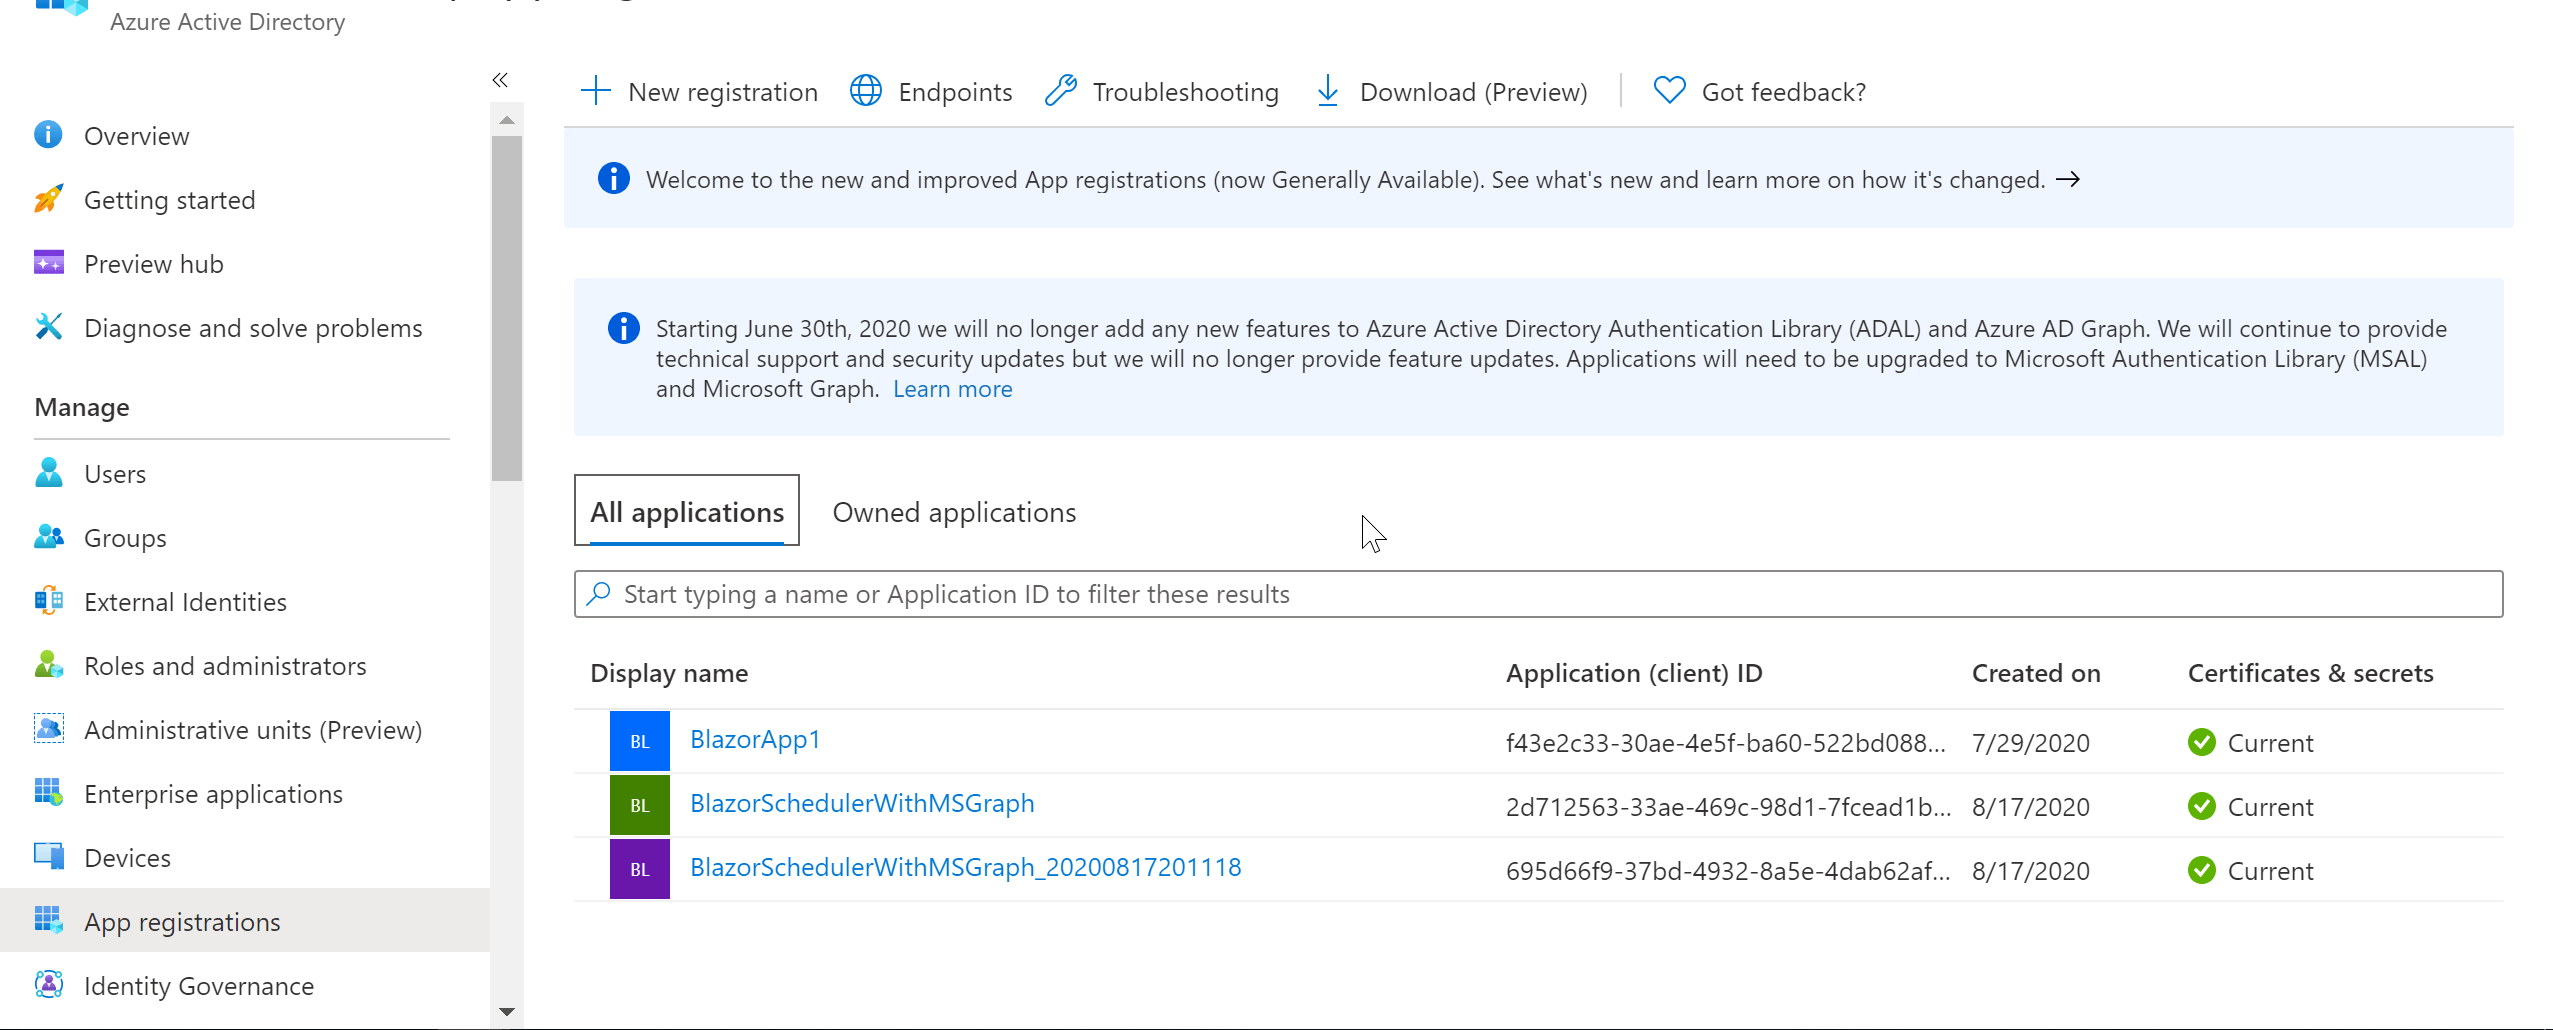 Select the App Registrations section from the Azure Active Directory